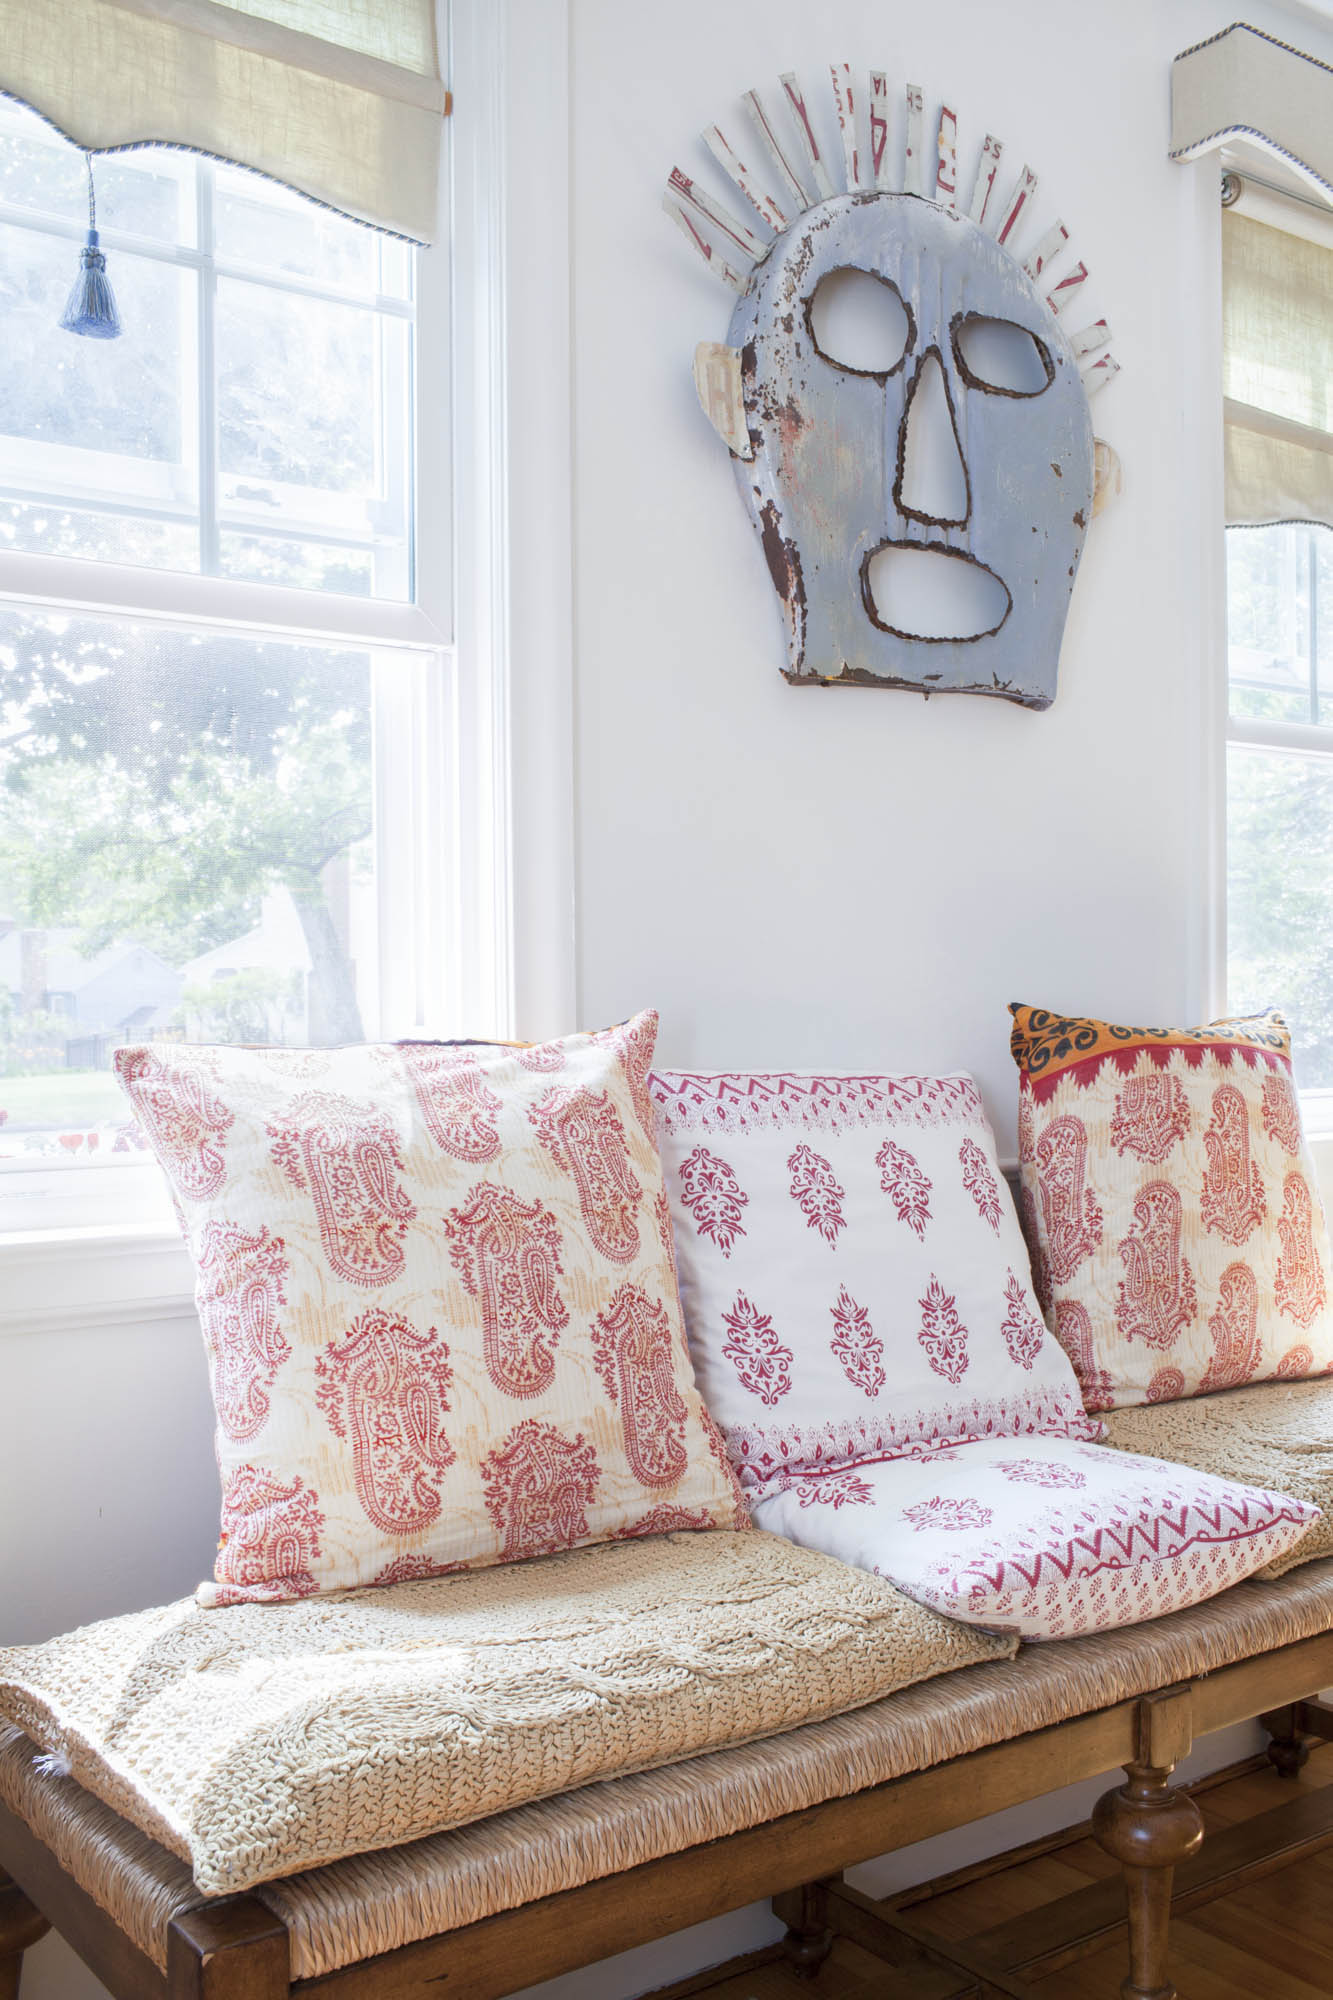 Liz Calvi, Photographer, Cottages & Garden, Interior, Home & Garden, Pillows, Artisan, Fine Art, Editorial Photography, Advertising Photography, London Photographer, Nest Studios, Erica Moses